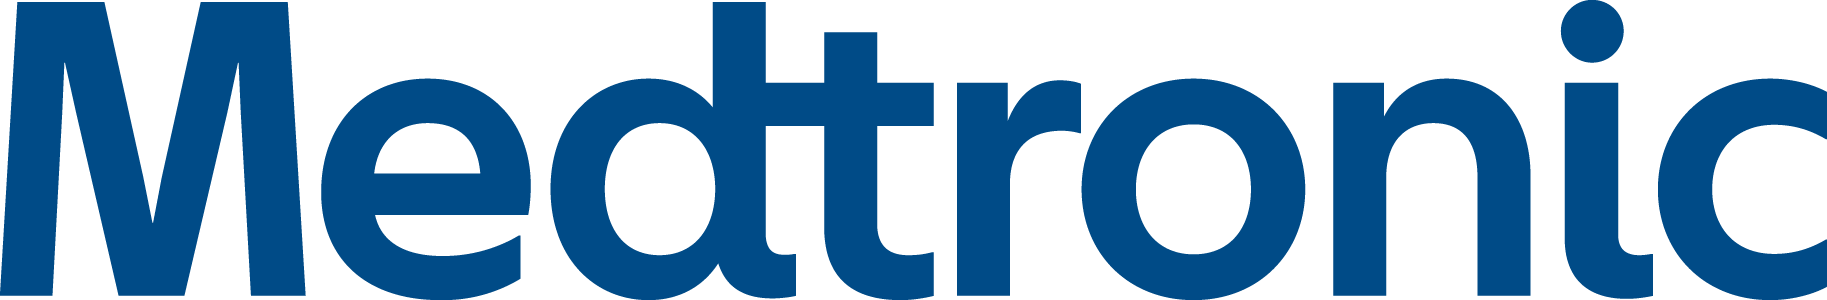 MEDTRONIC ITALIA SPA Logo